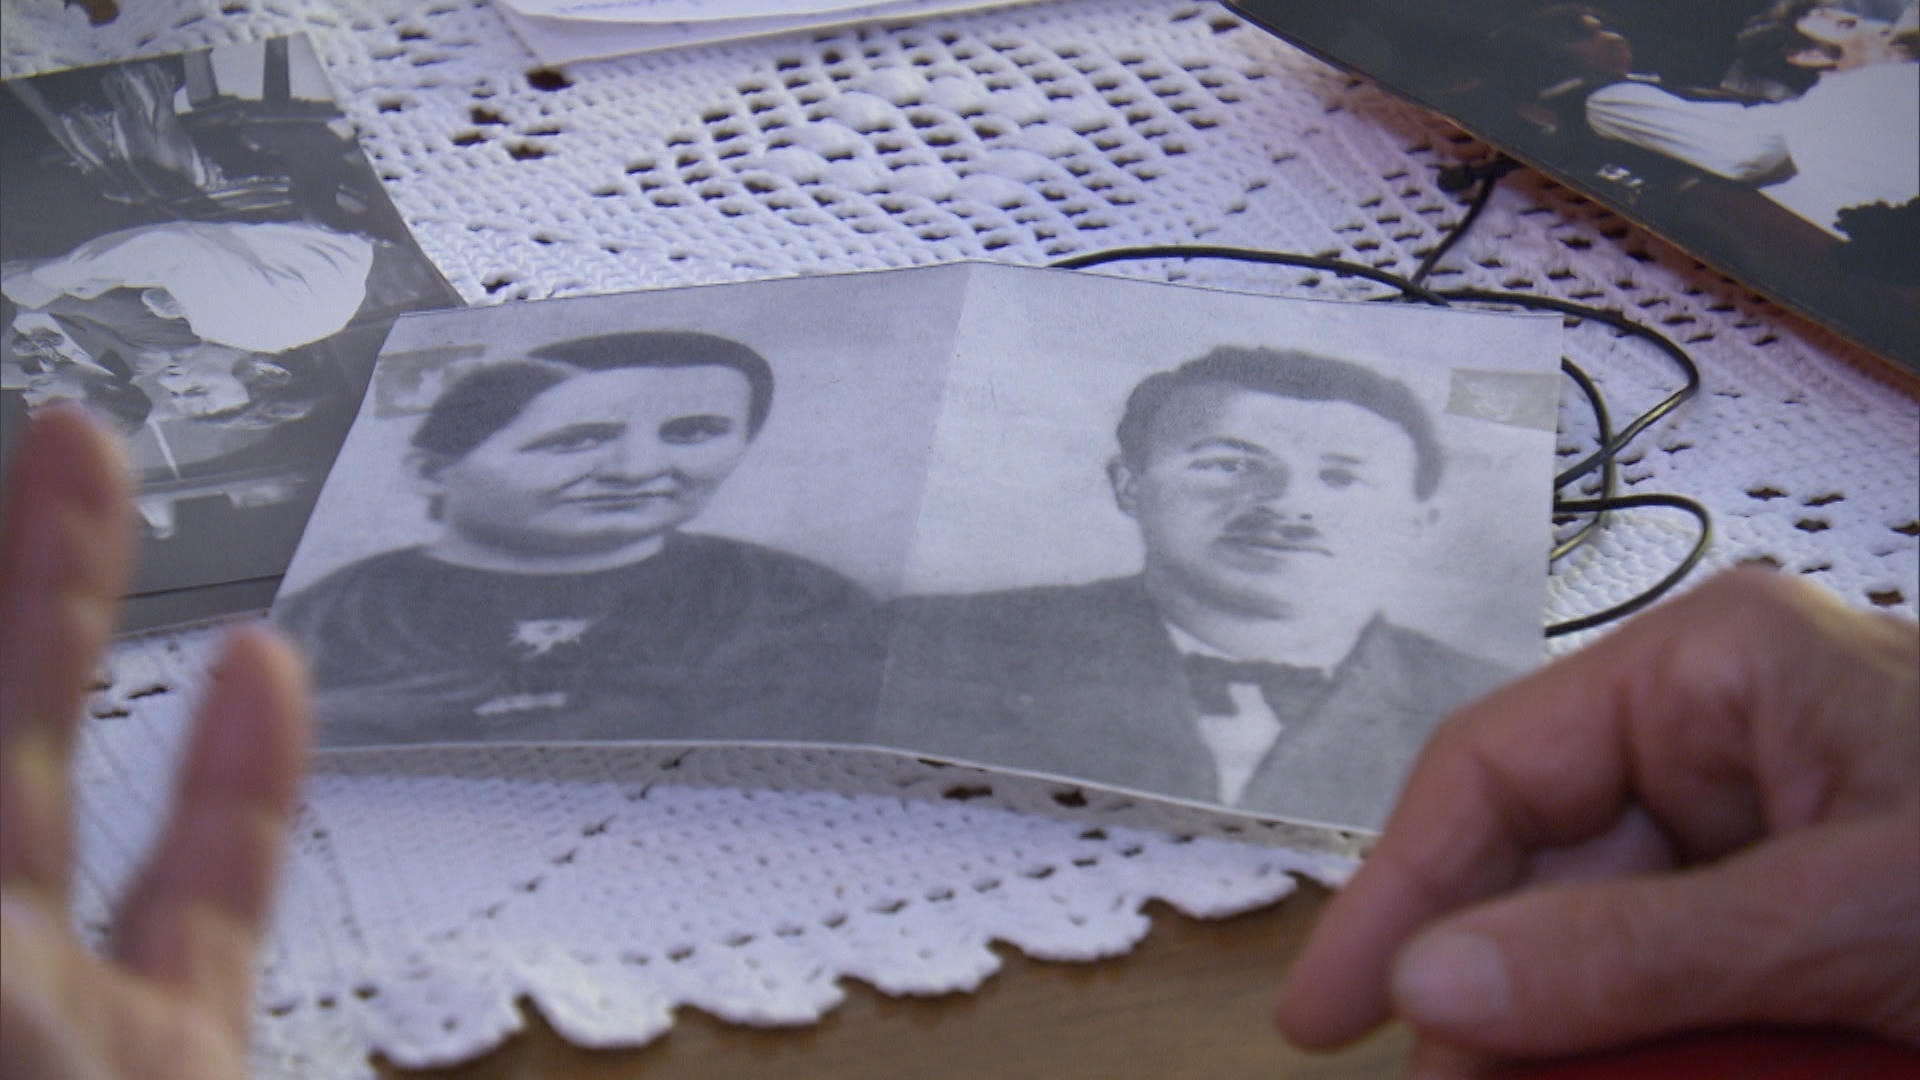 Frozen in Time: Swiss Couple Just One of Many Findings